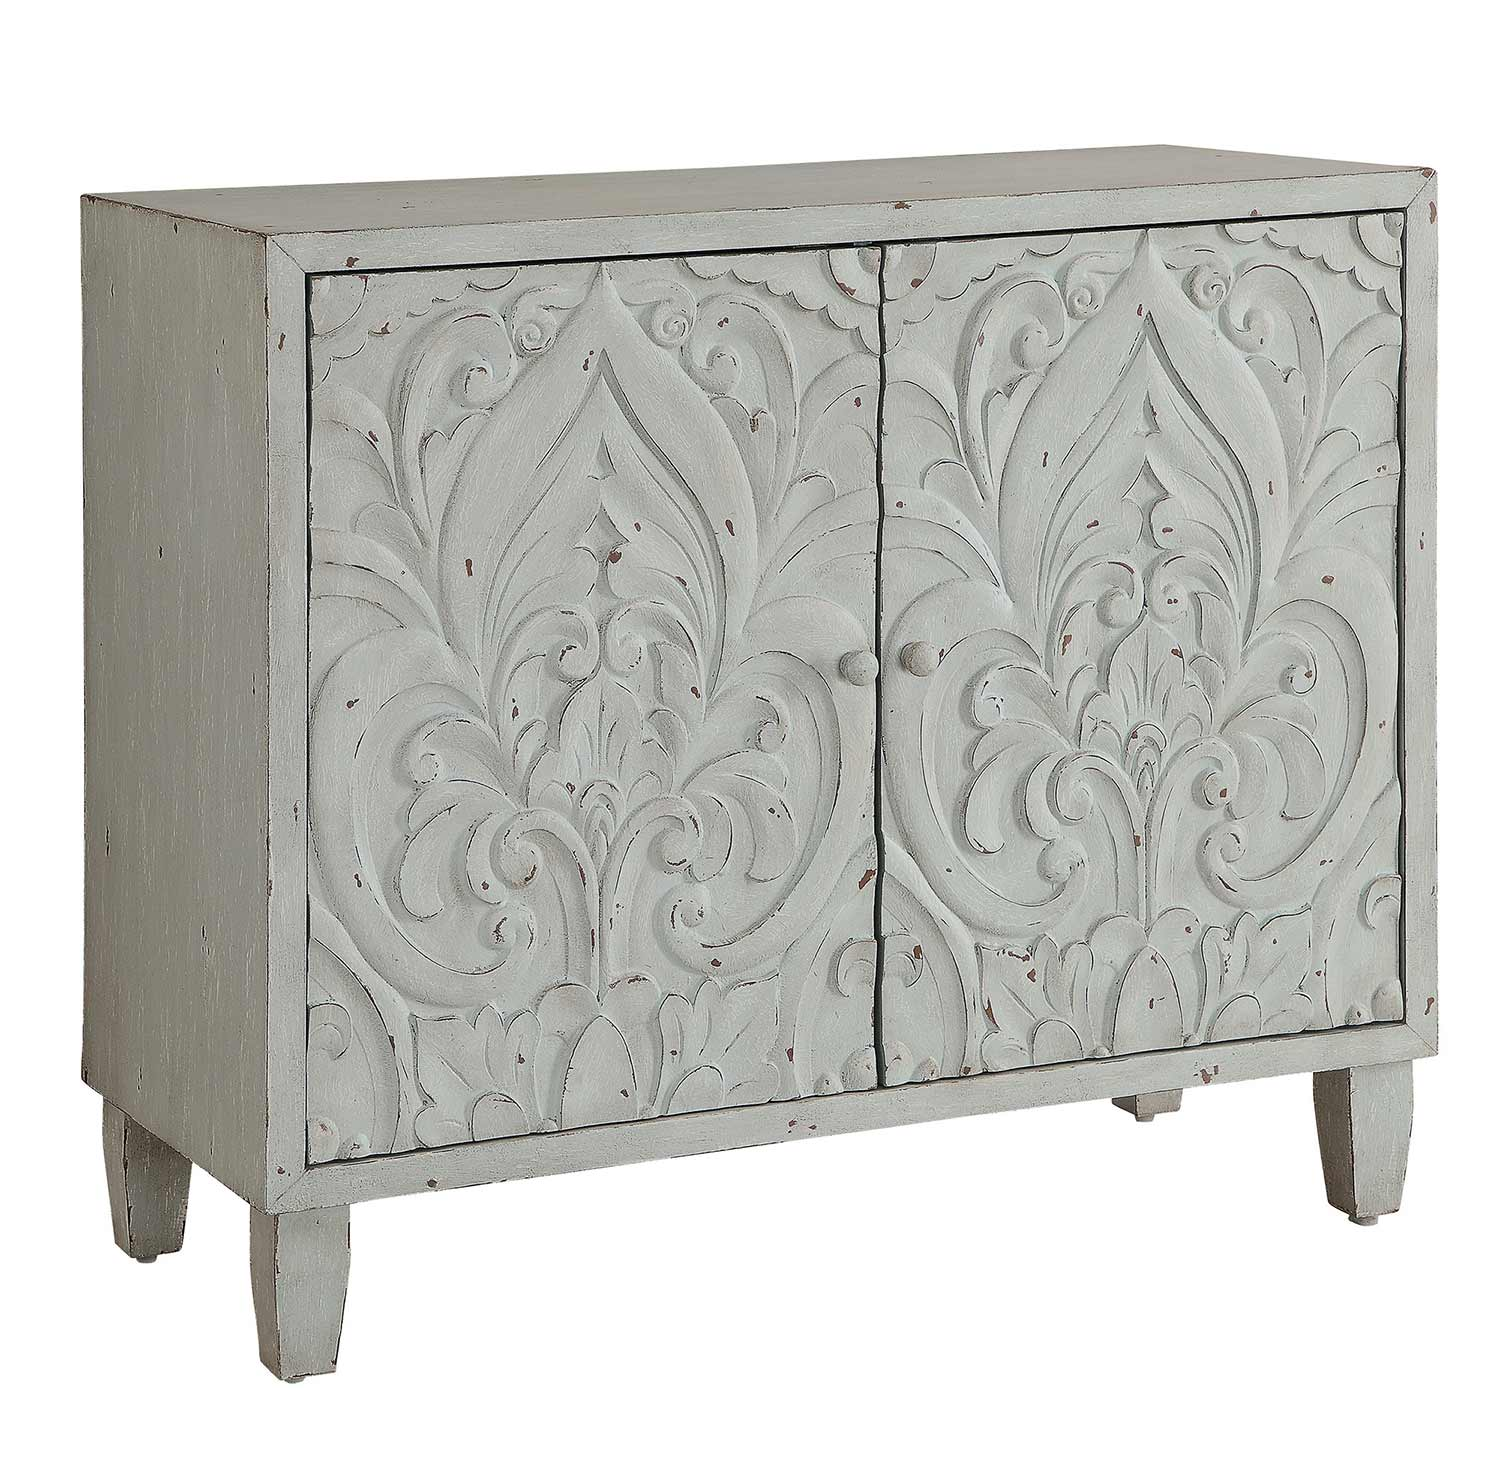 Coaster 950710 Accent Cabinet - Grey